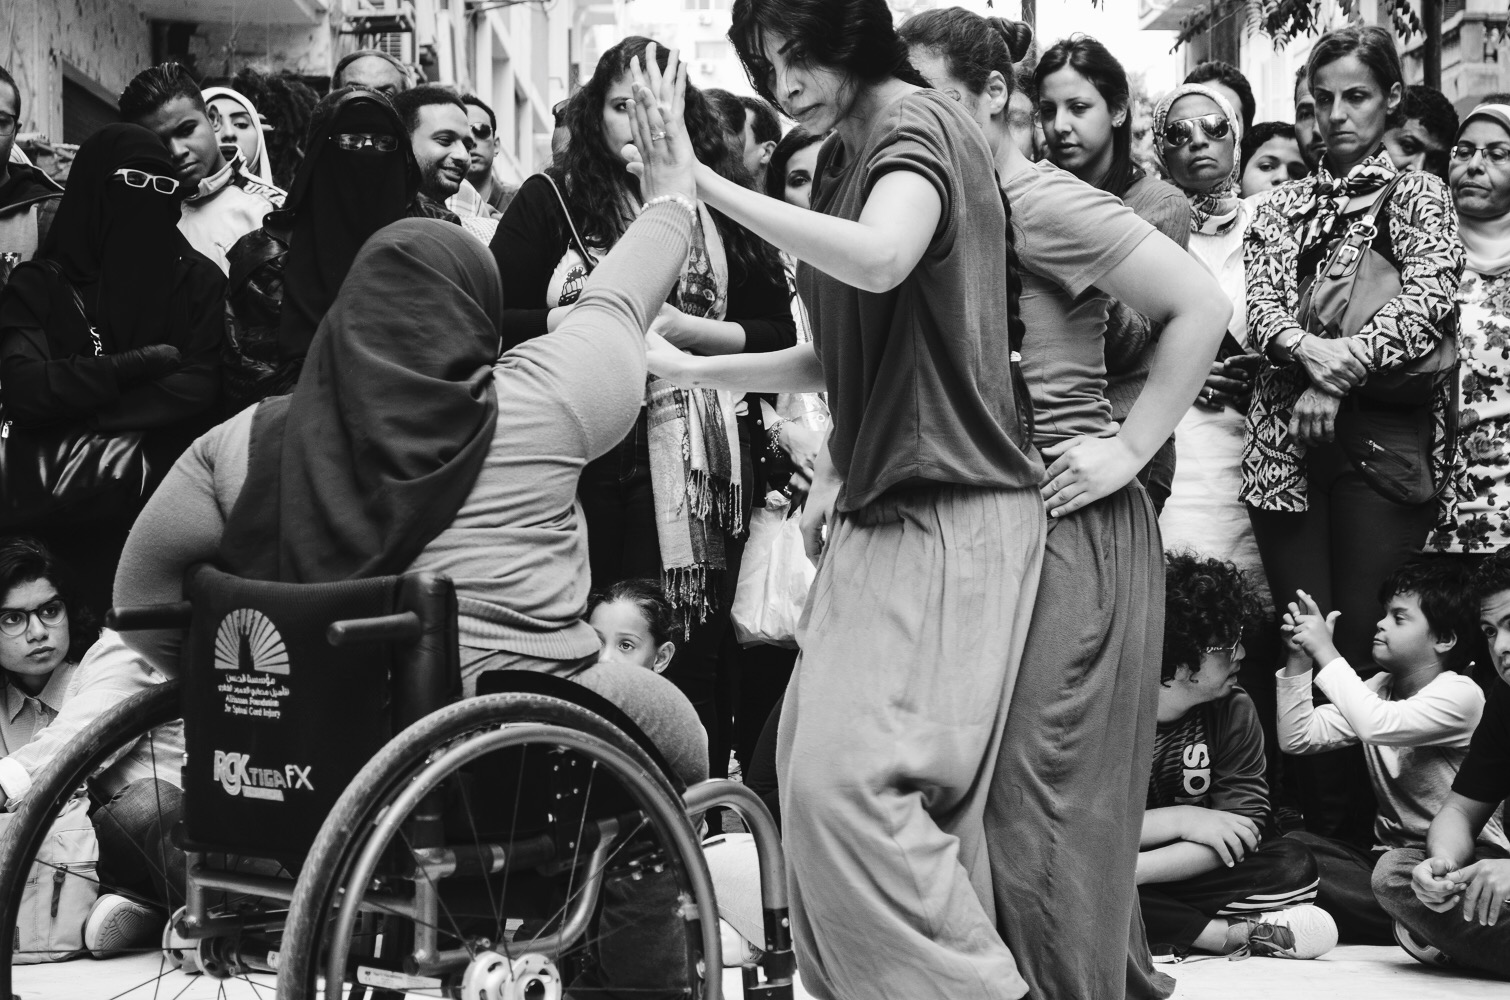 Disability is a performance...disabled people live most of their lives trying to cross obstacles and break limitations in their life...whether on a wheel chair or any sort of aid...they are always in motion and action...performing their disability, feeling the familiar and unfamiliar...